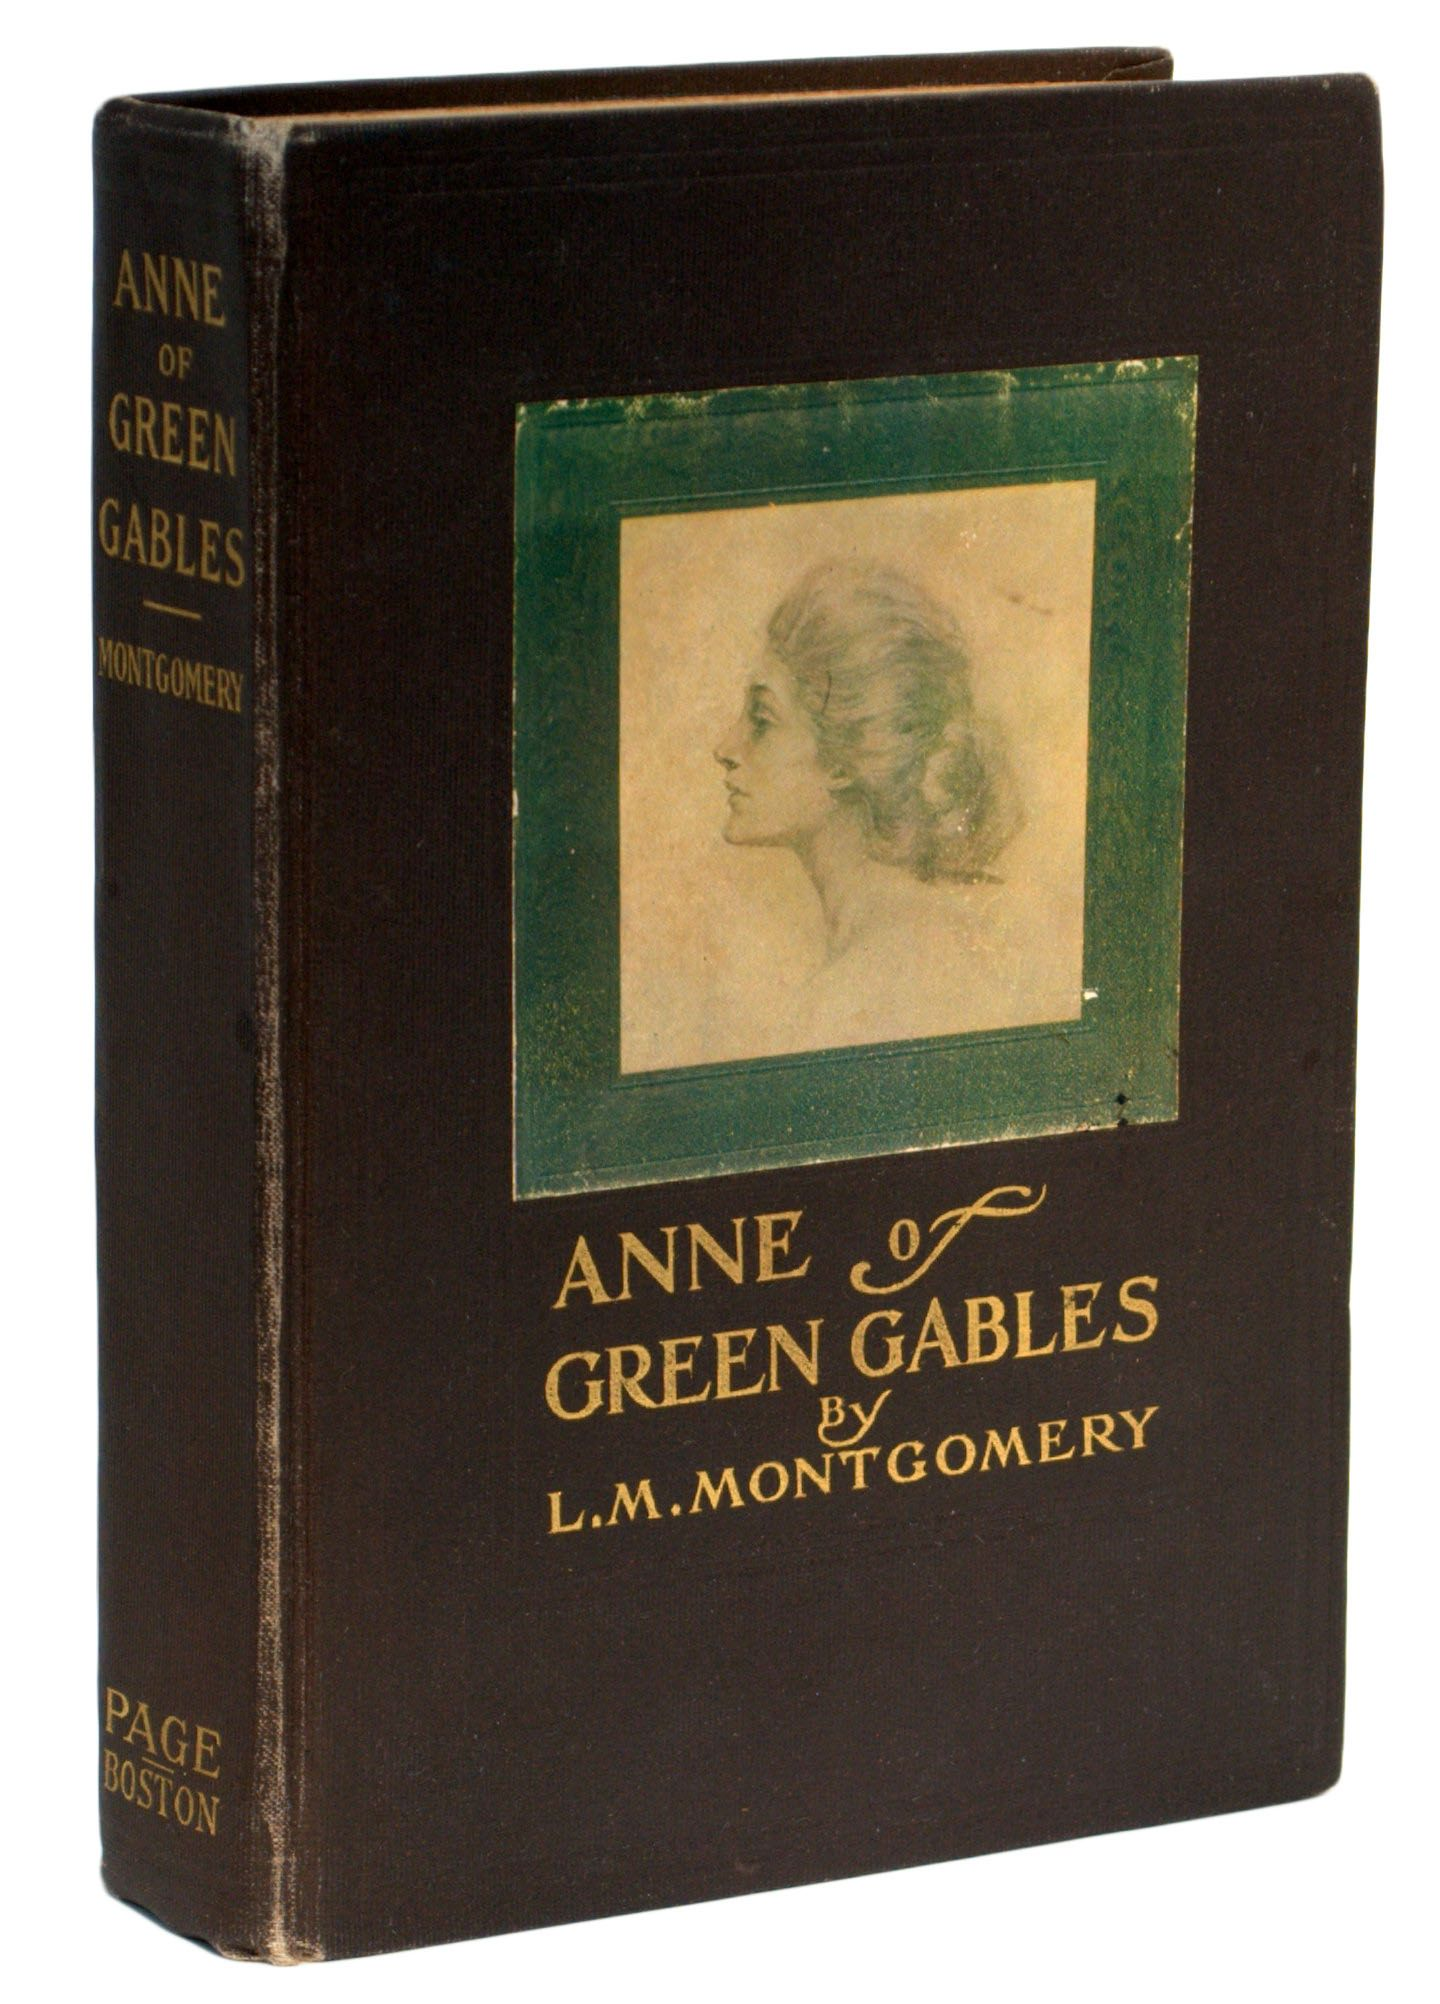 what is anne of green gables book about